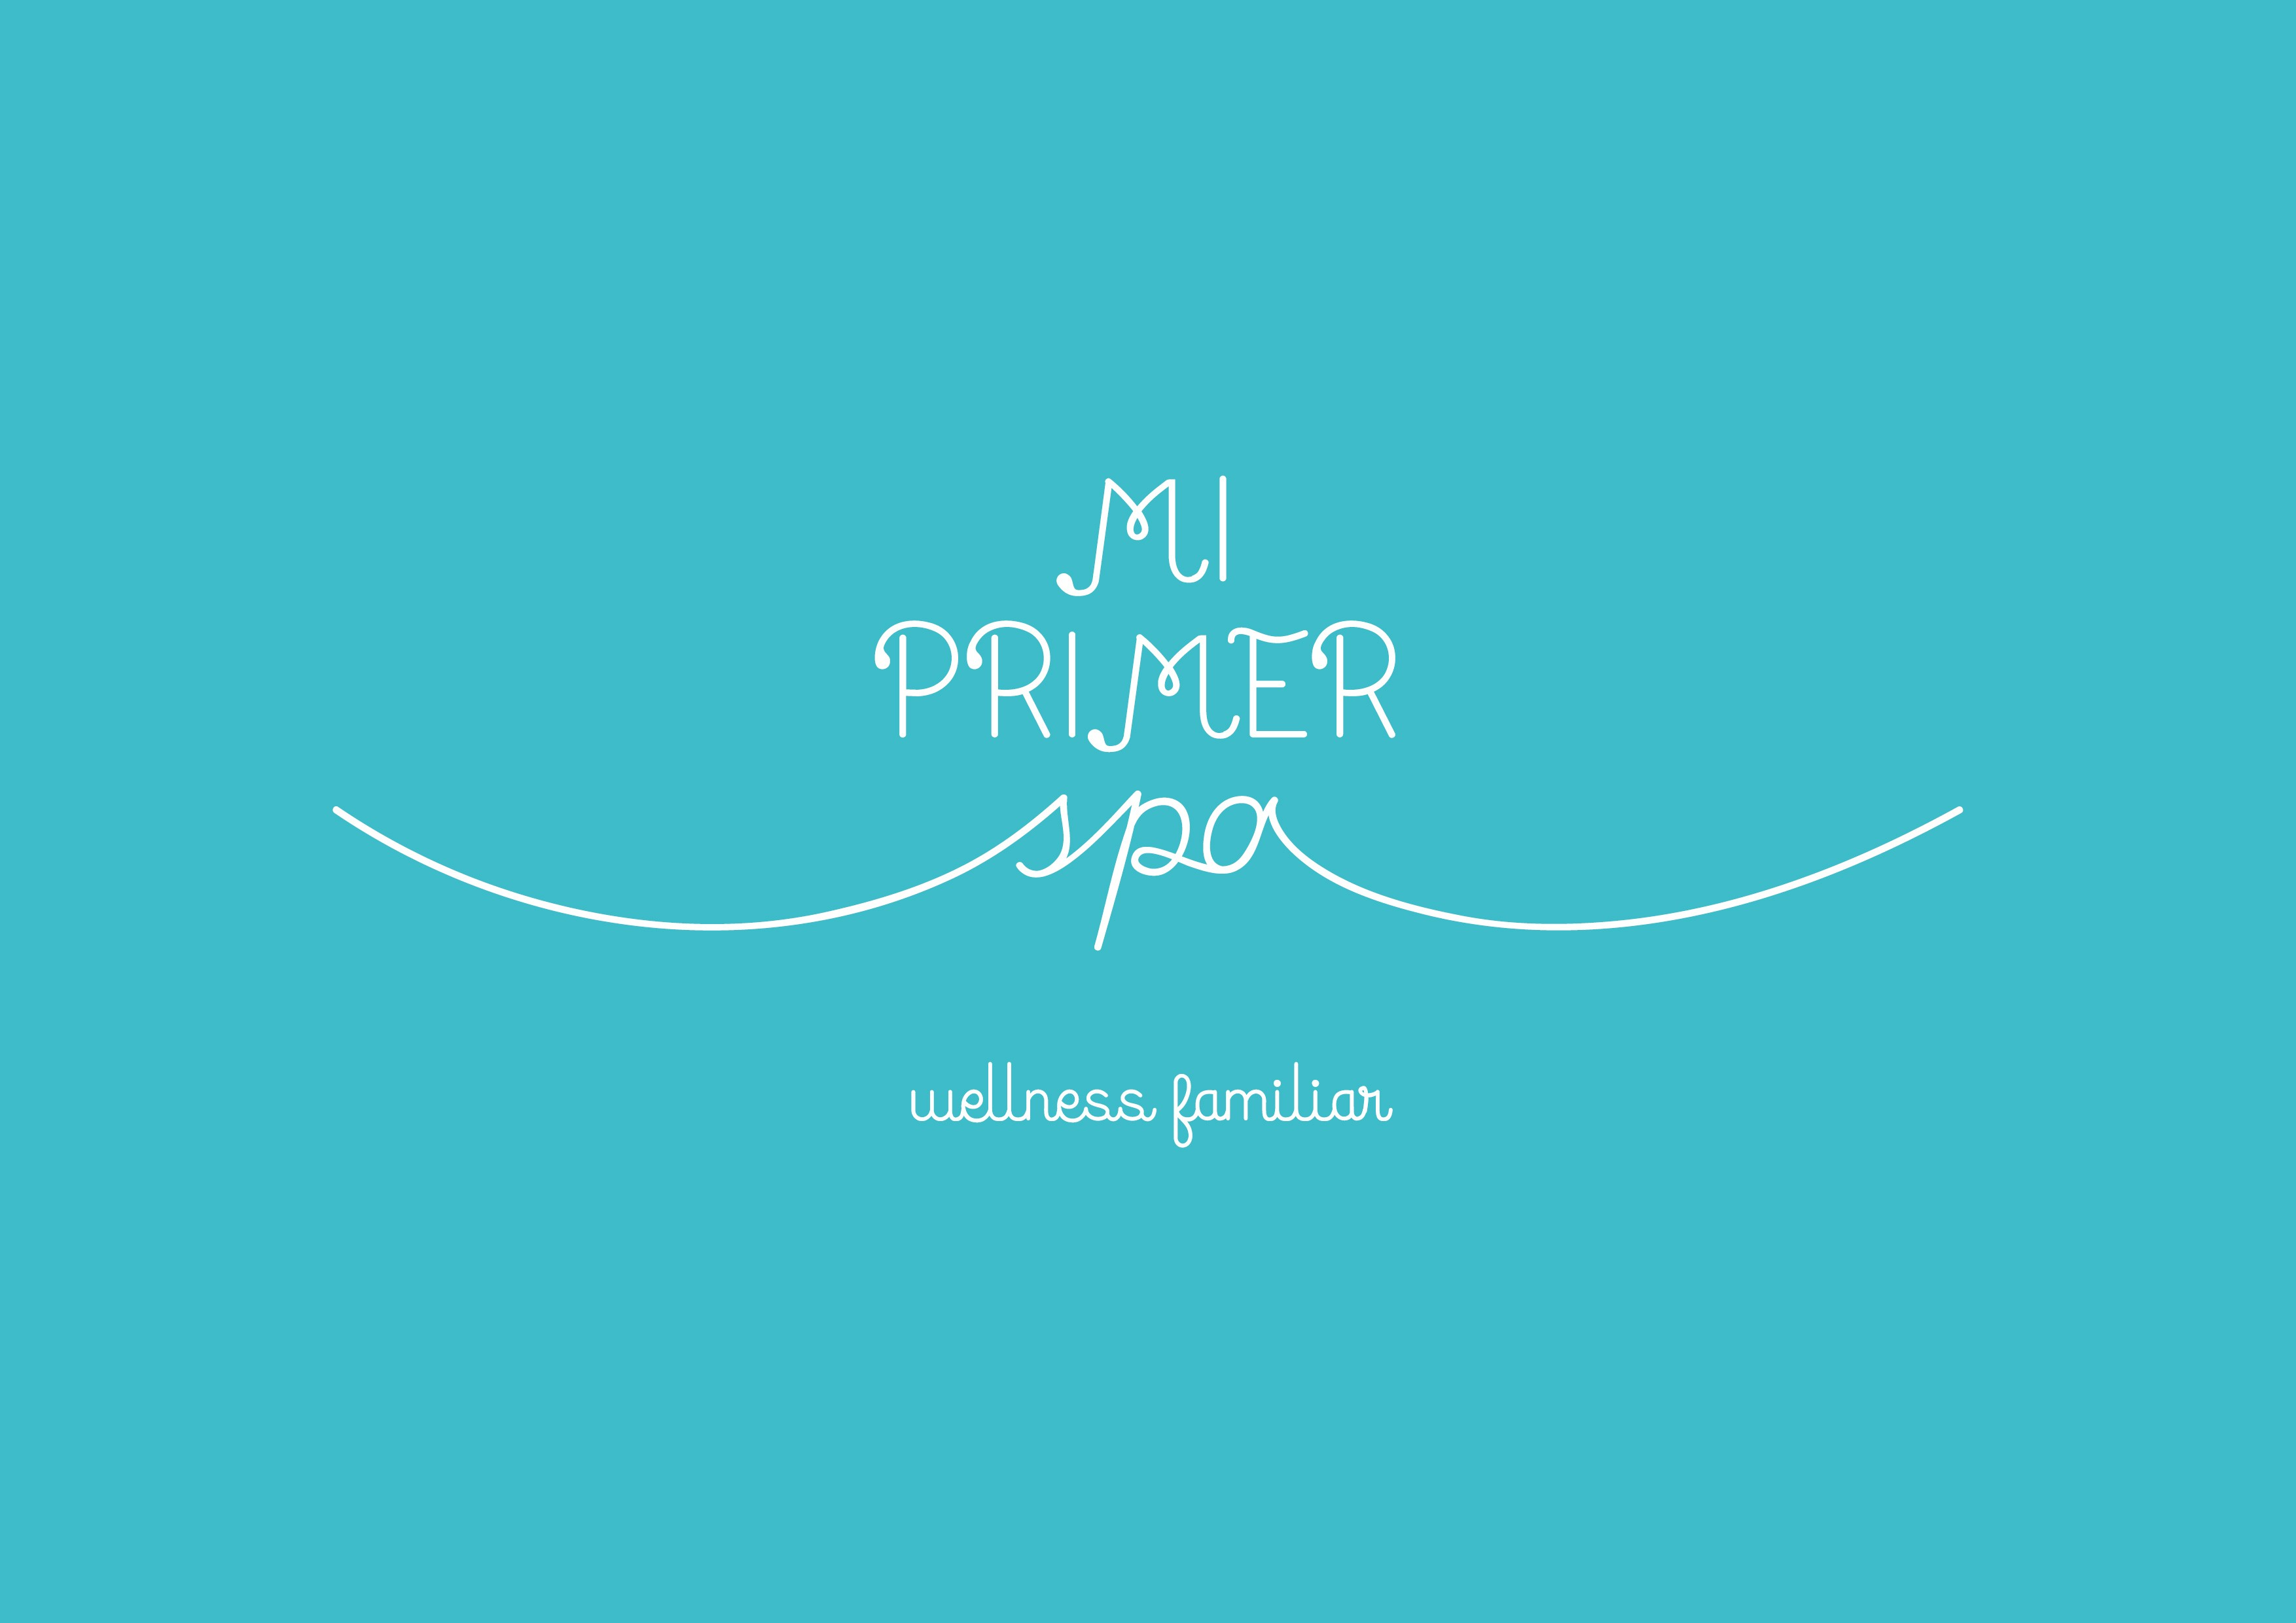 Mi primer spa wellness familiar